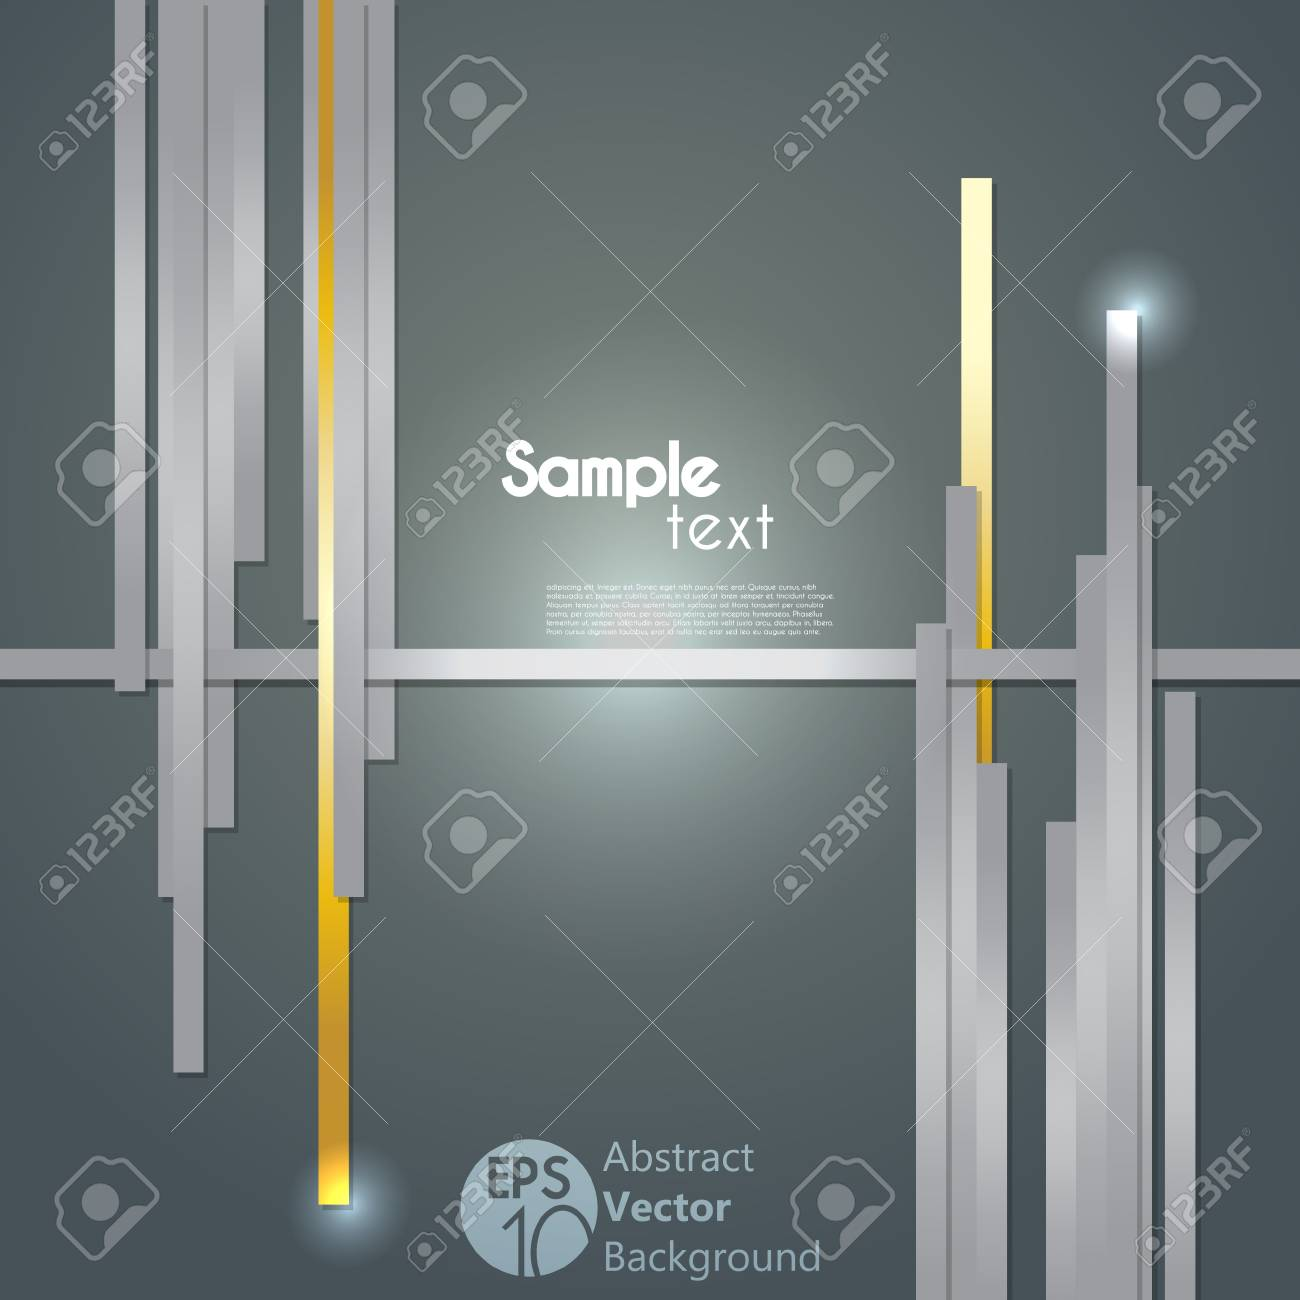 Overlapping Thick Lines Concept Illustration Stock Vector - 15361516